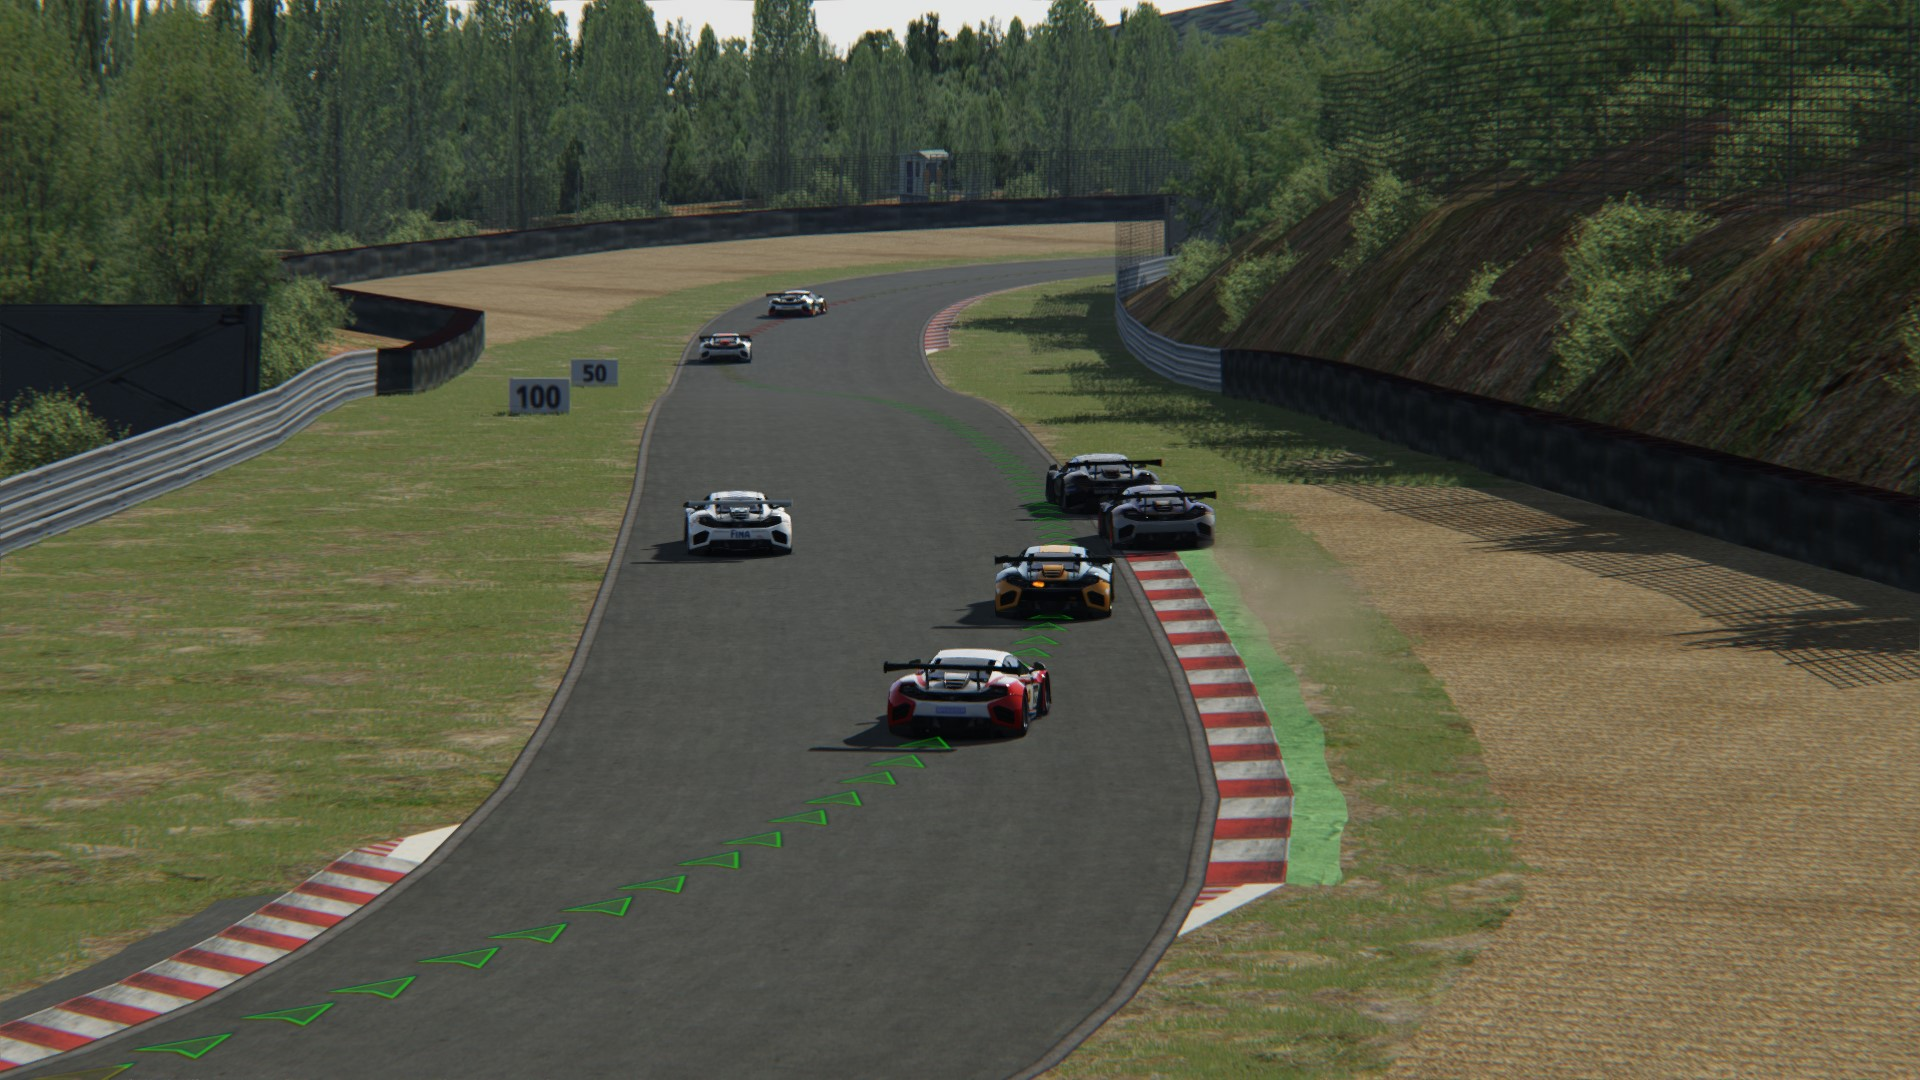 Screenshot_mclaren_mp412c_gt3_sportsland_sugo_7-4-116-9-59-59.jpg